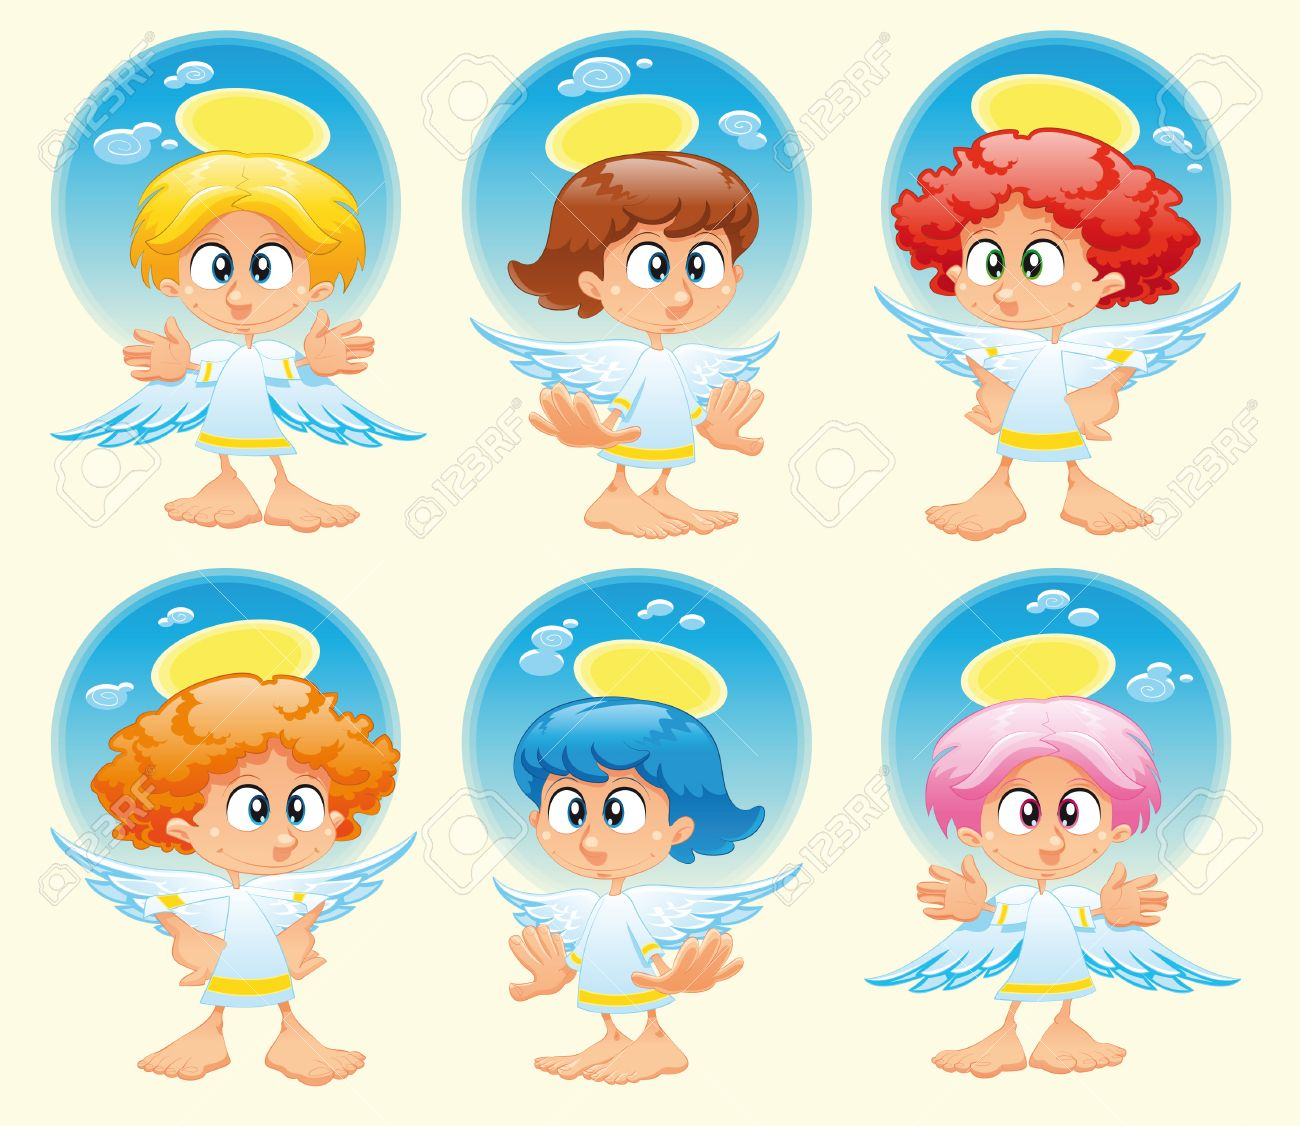 Family of angels with background, cartoon and vector illustration Stock Vector - 5516479